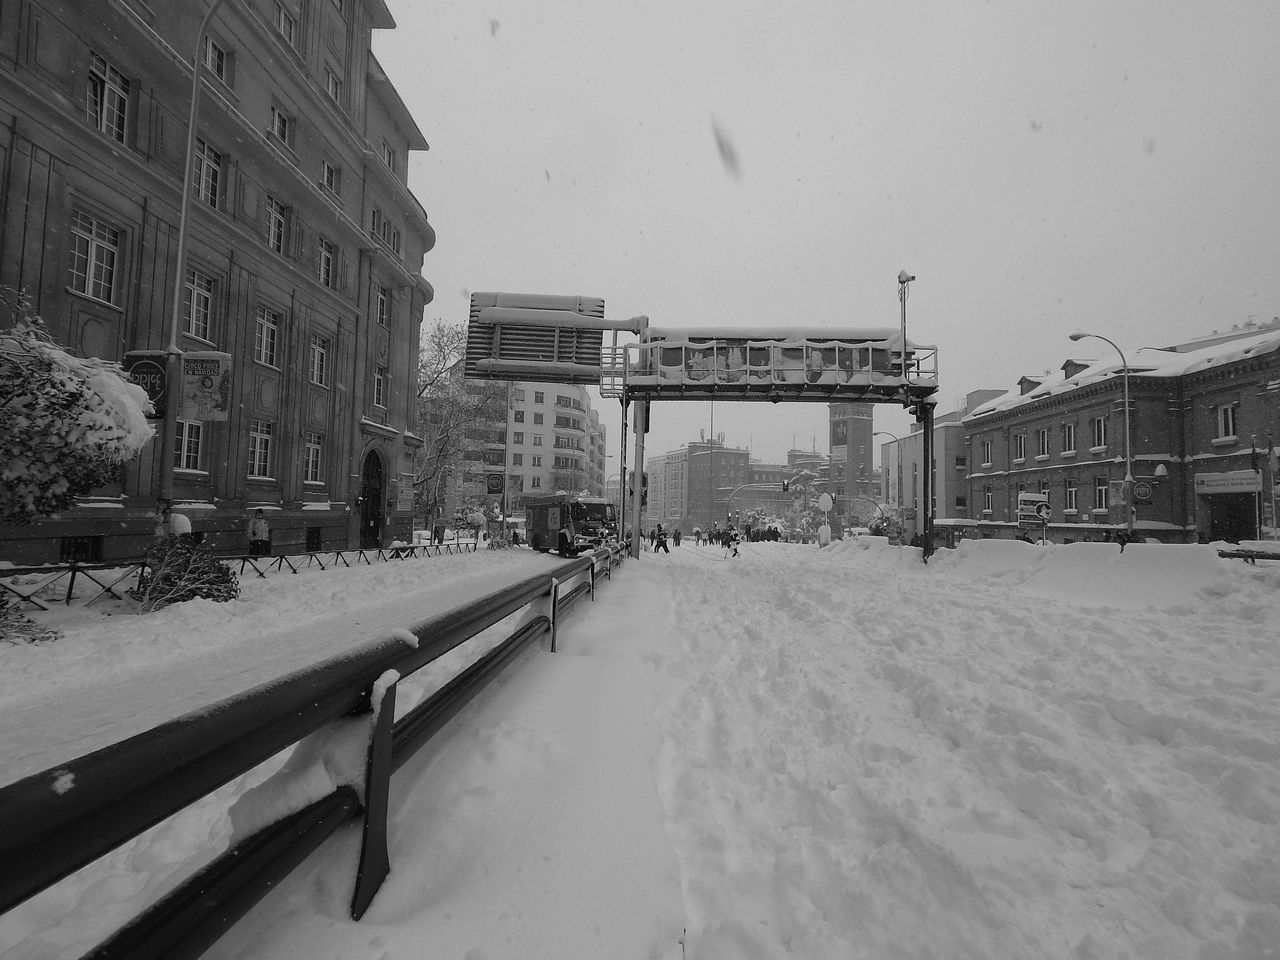 SNOW COVERED STREET BY BUILDINGS AGAINST SKY